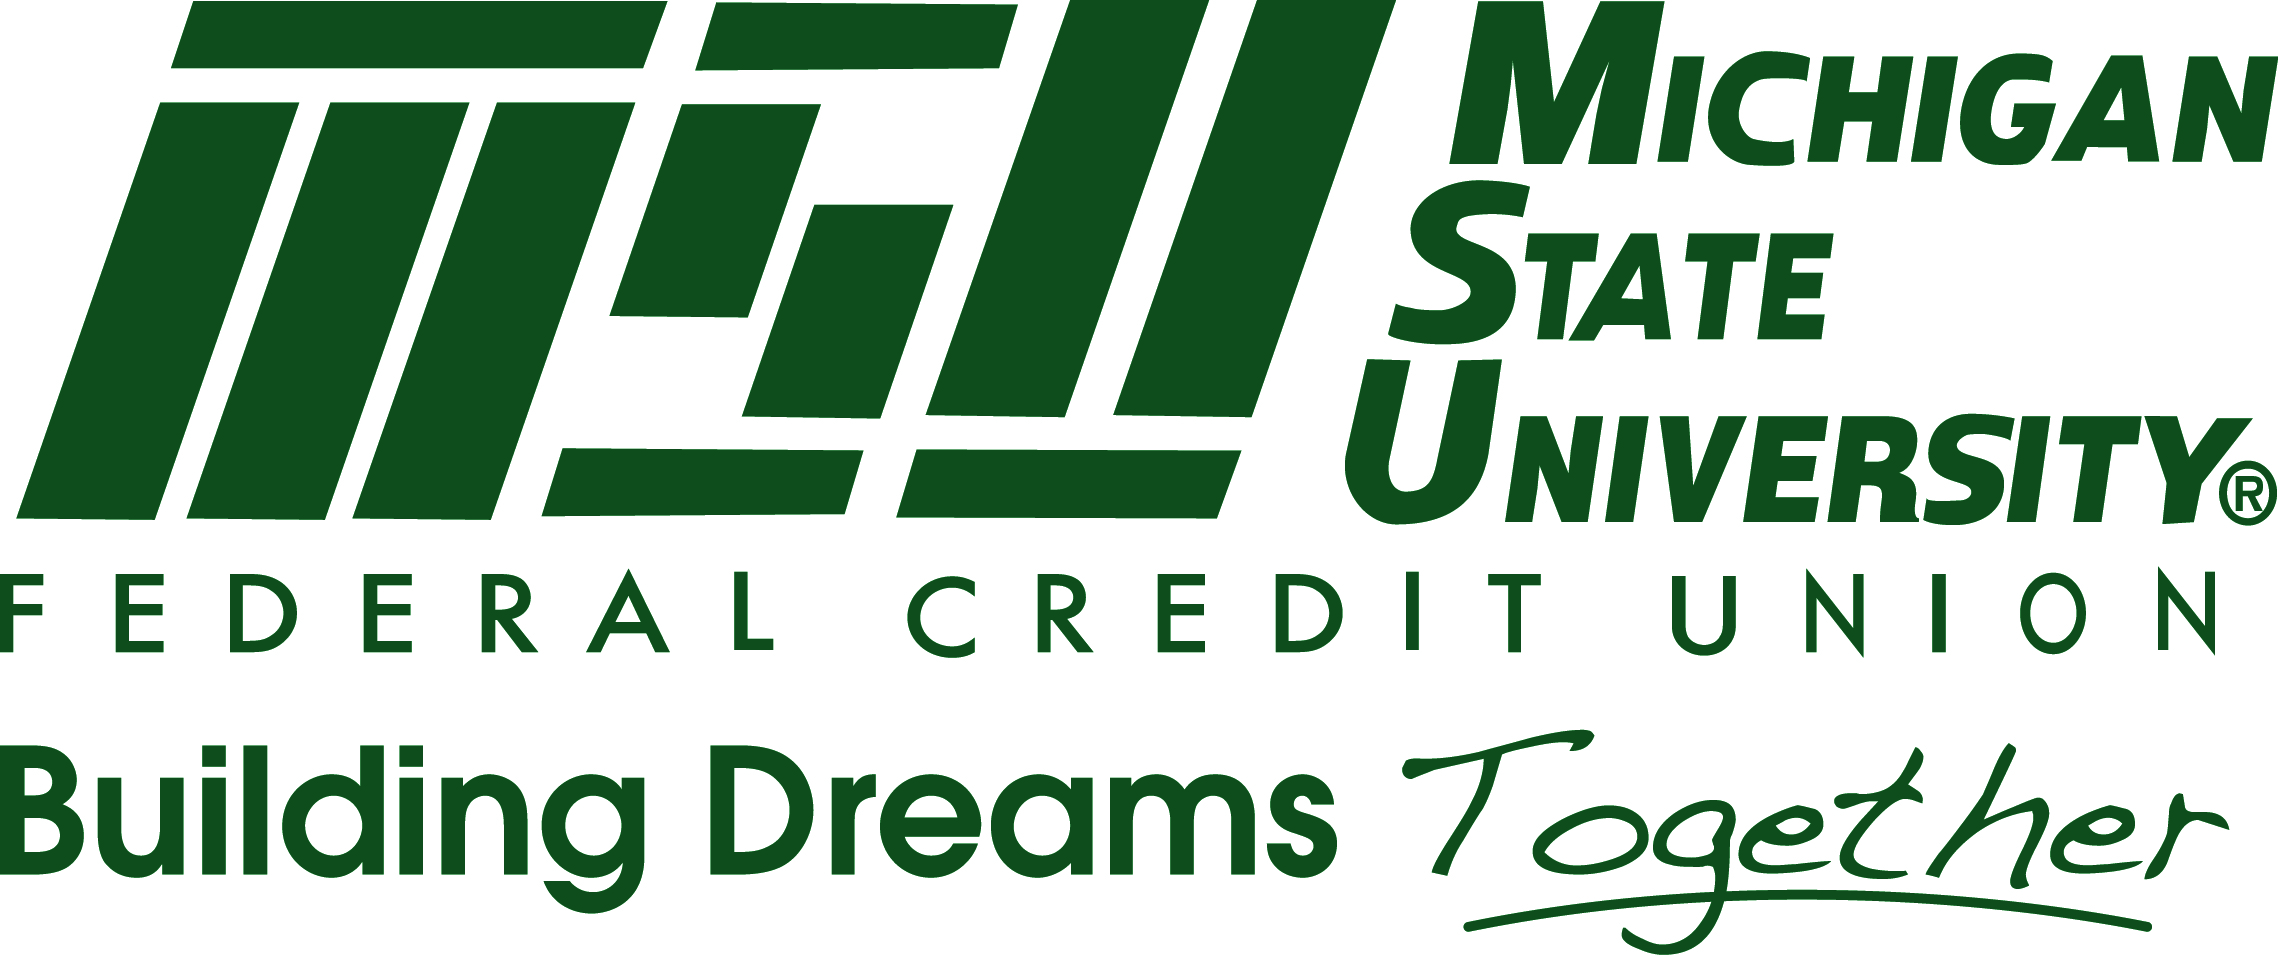 Link to MSUFCU homepage.